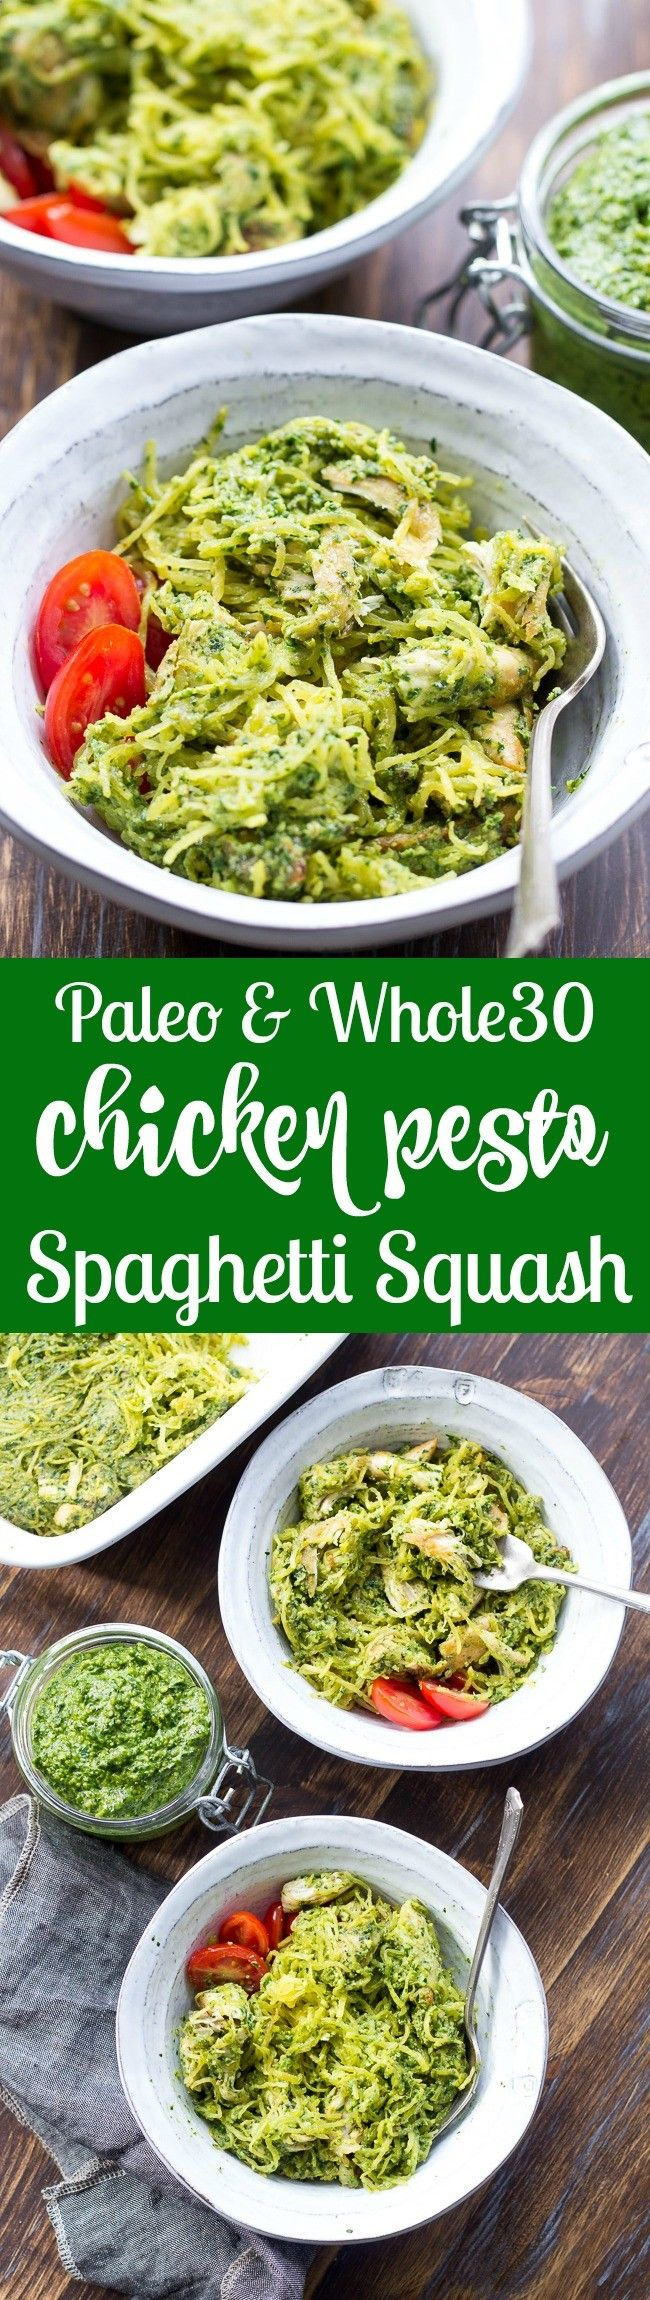 Perfectly cooked spaghetti squash is tossed with a flavor-packed Paleo  Whole30 pesto and seasoned chicken for a healthy filling meal even squash haters will love! This Paleo spaghetti squash dinner makes great leftovers too! Whole30, dairy free and low carb.